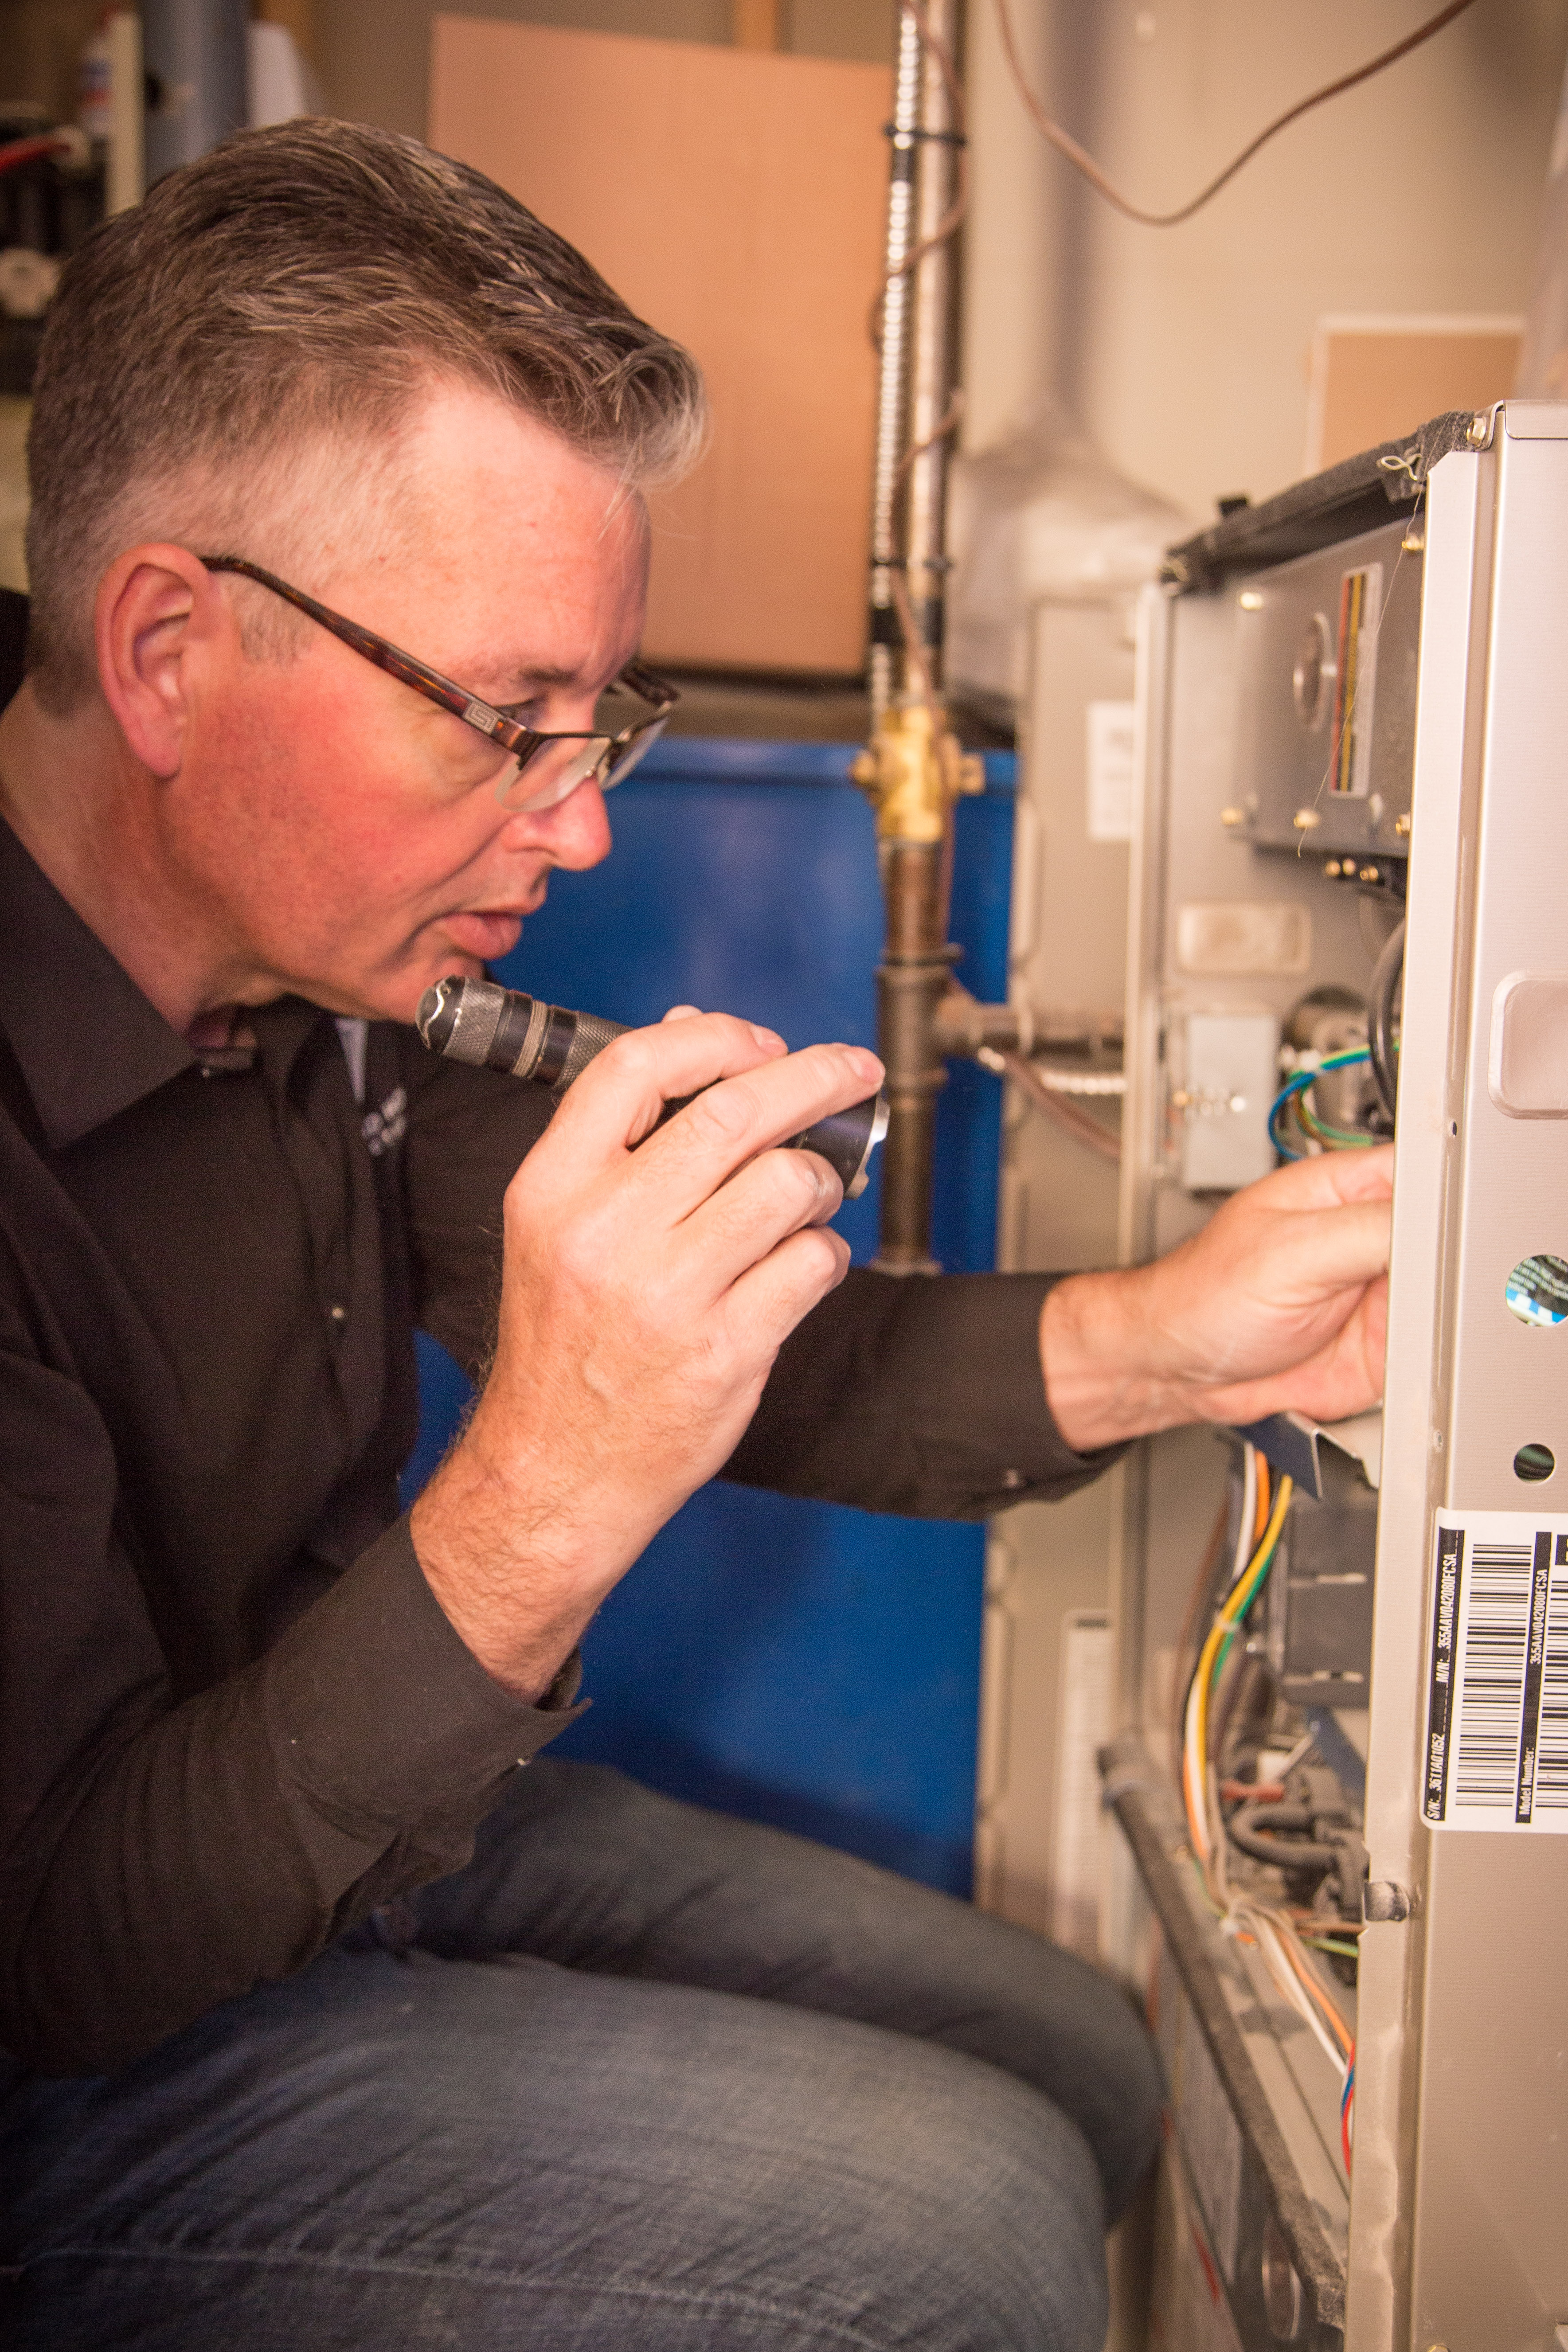 Furnace Inspection by Egbert Jager B.Sc. RHI